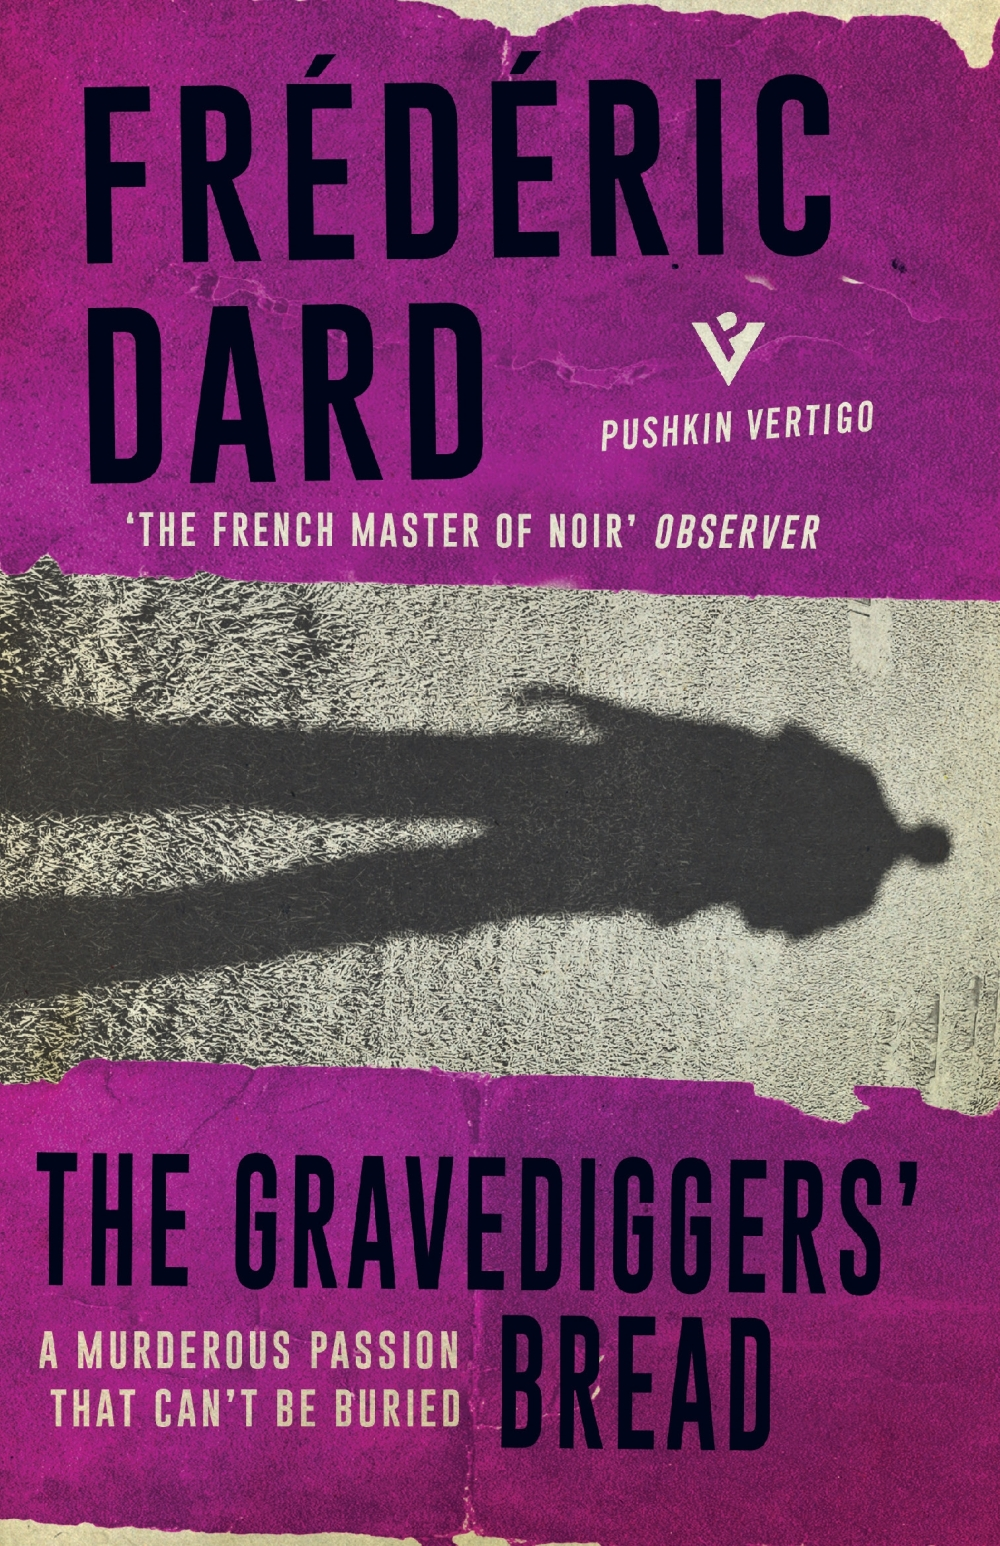 The Gravediggers Bread Frederic Dard Pushkin Vertigo book cover